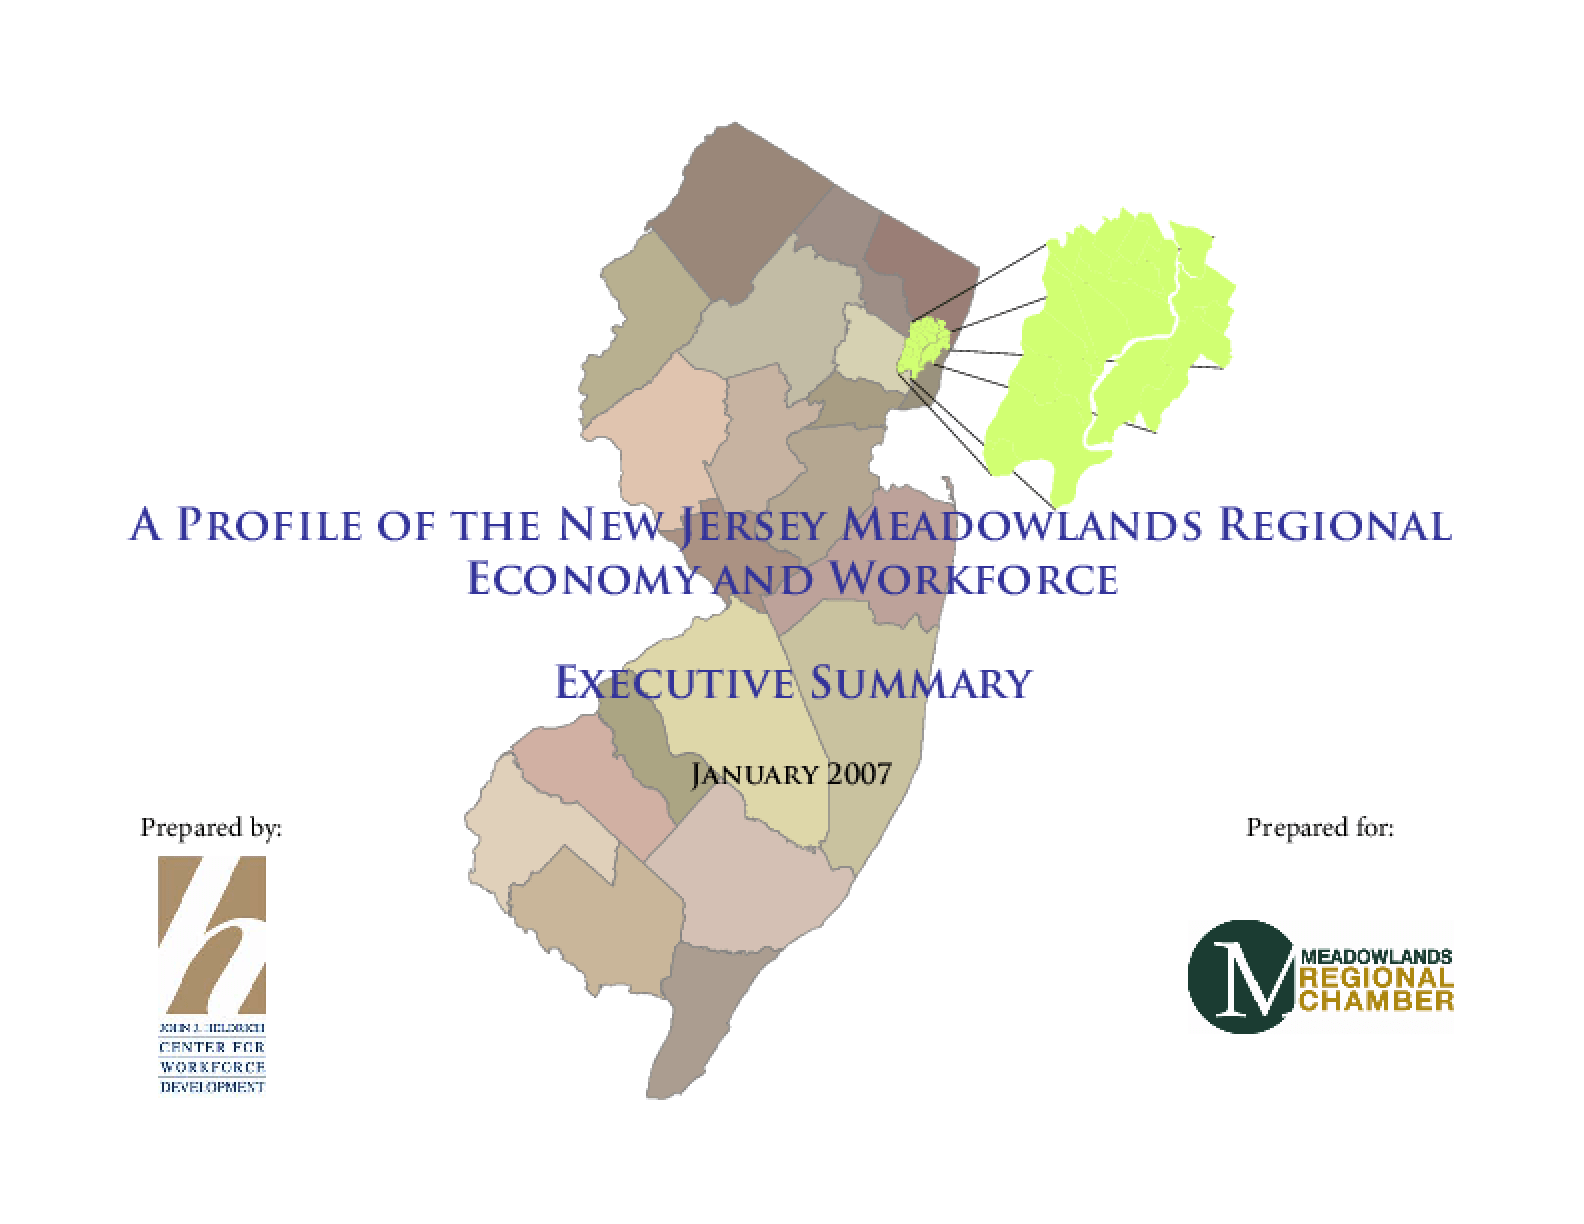 Profile of the Meadowlands Regional Economy and Workforce: Executive Summary